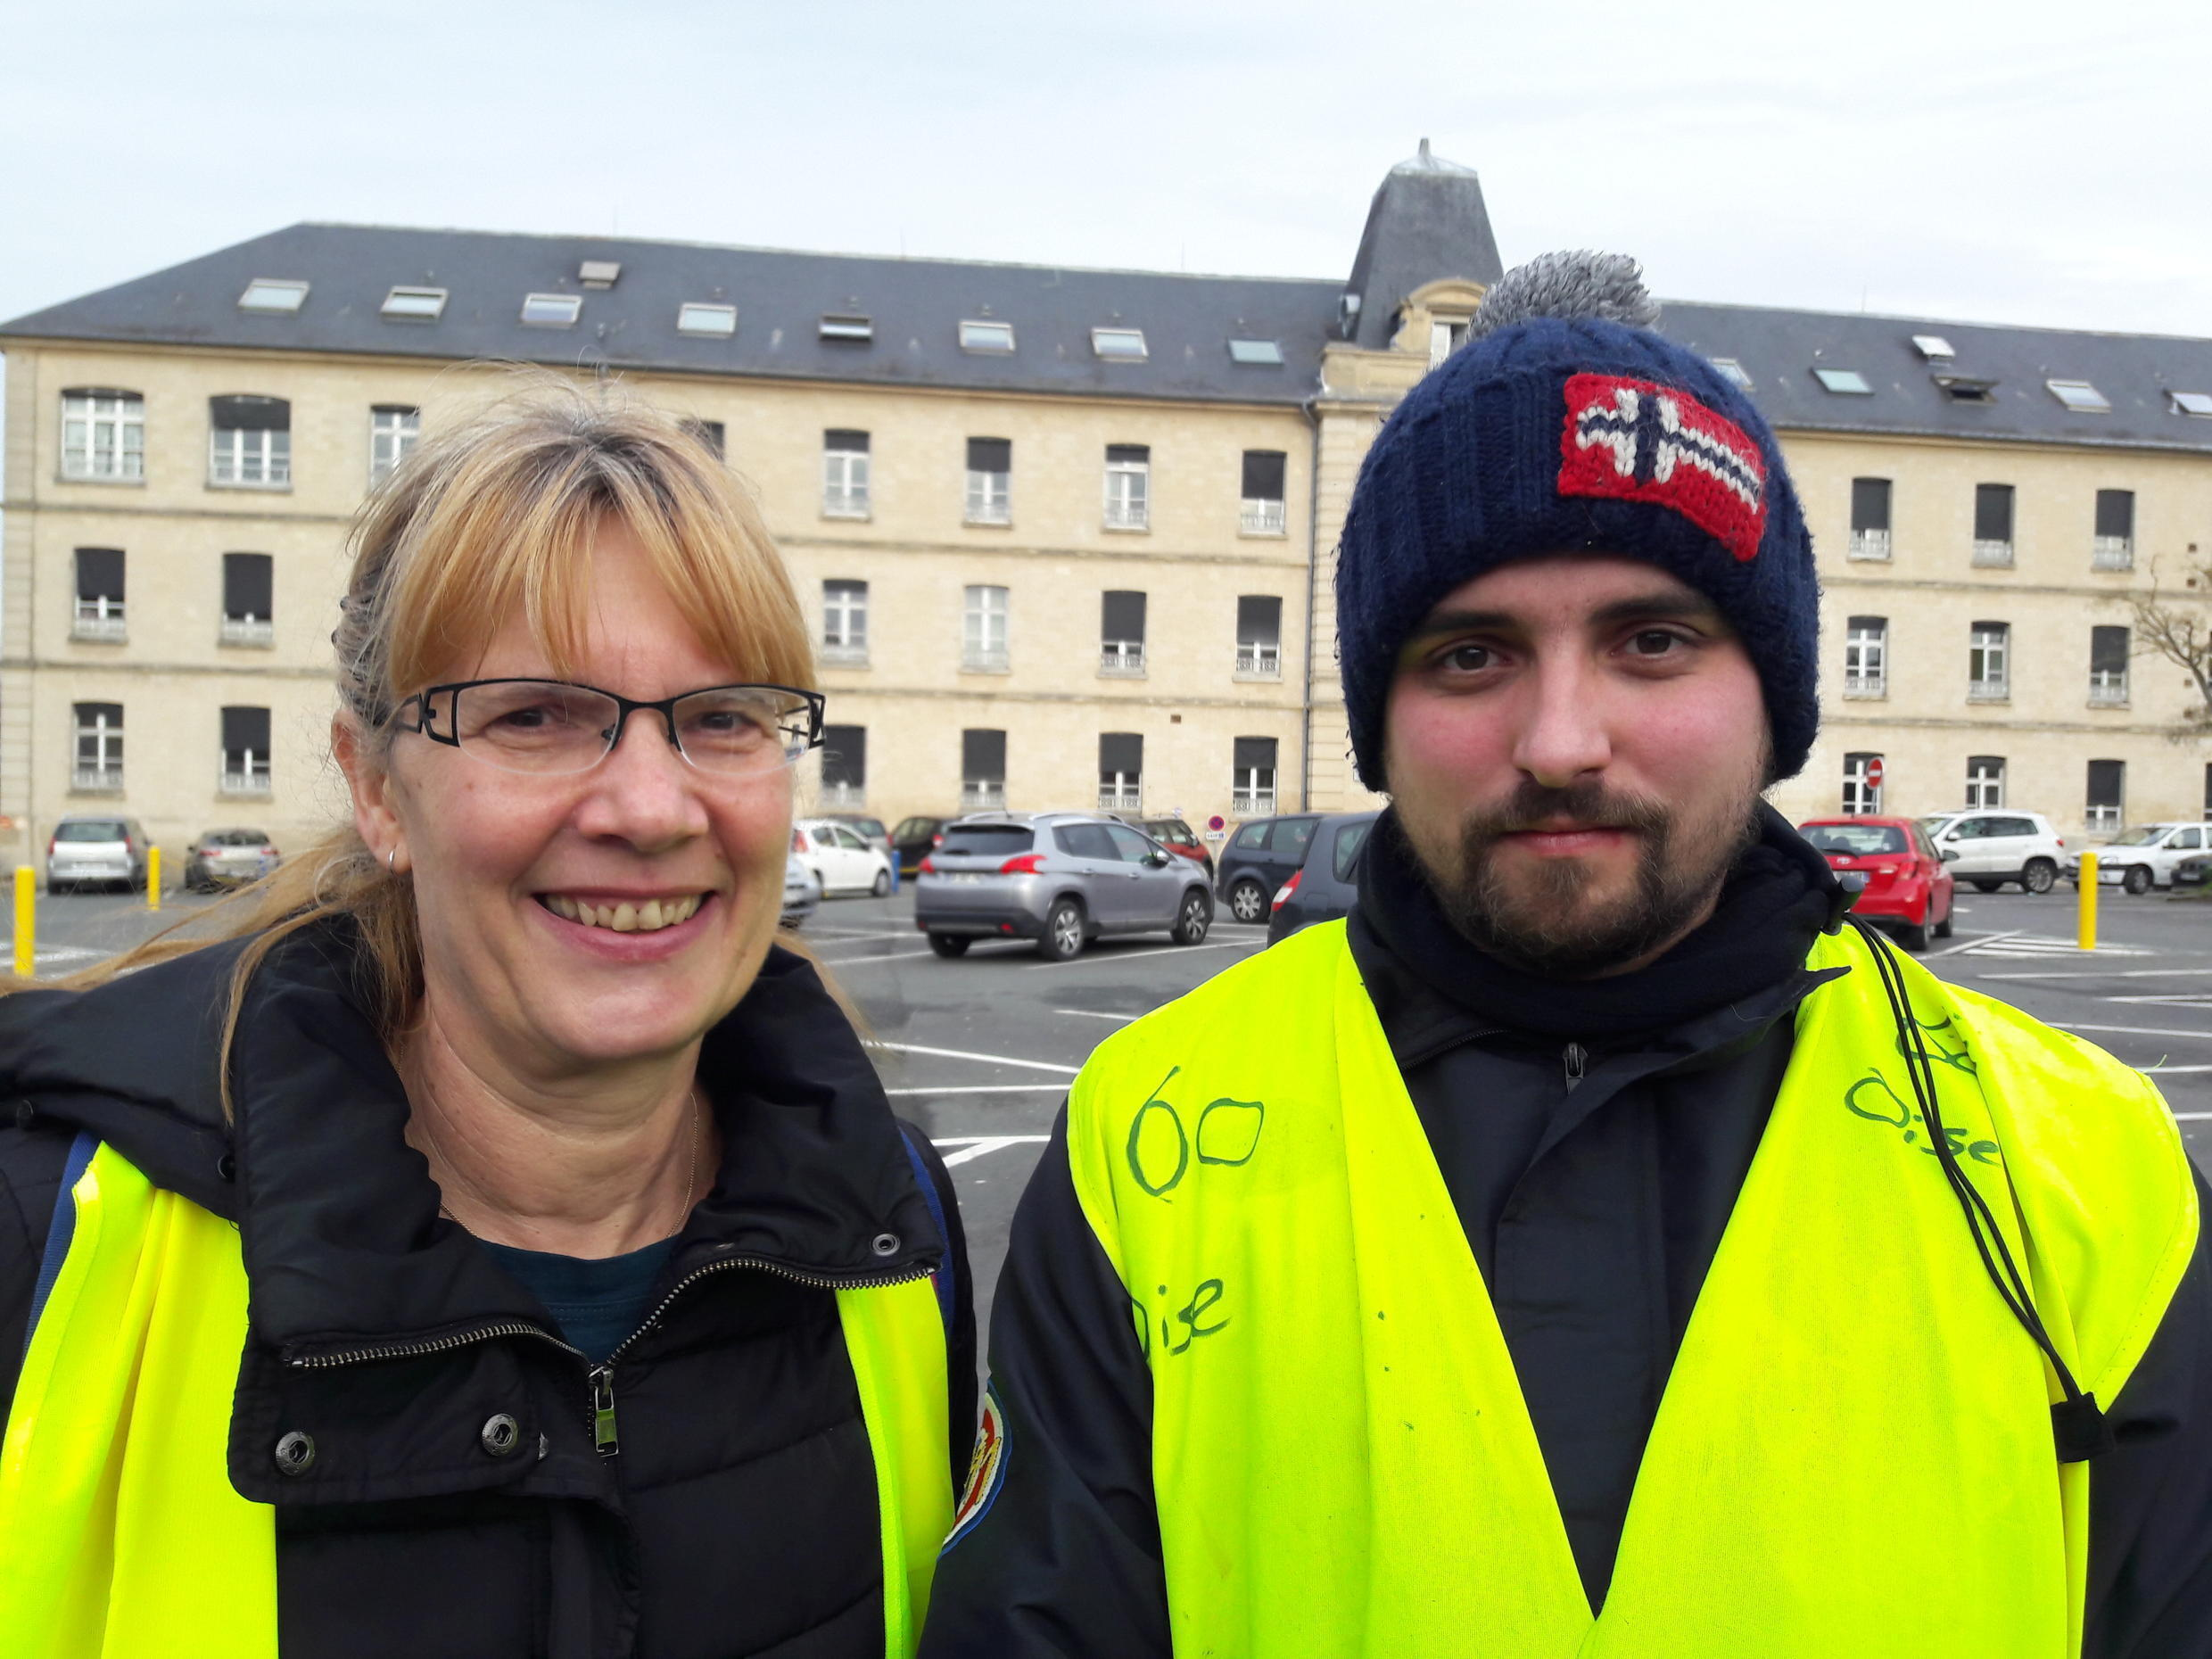 Yellow Vests: Annie Mallon and Kevin Gomes were part of a group of 30 people from Beaumont-sur-Oise who demonstrated on the Champs-Elysées in Paris on 1 December.